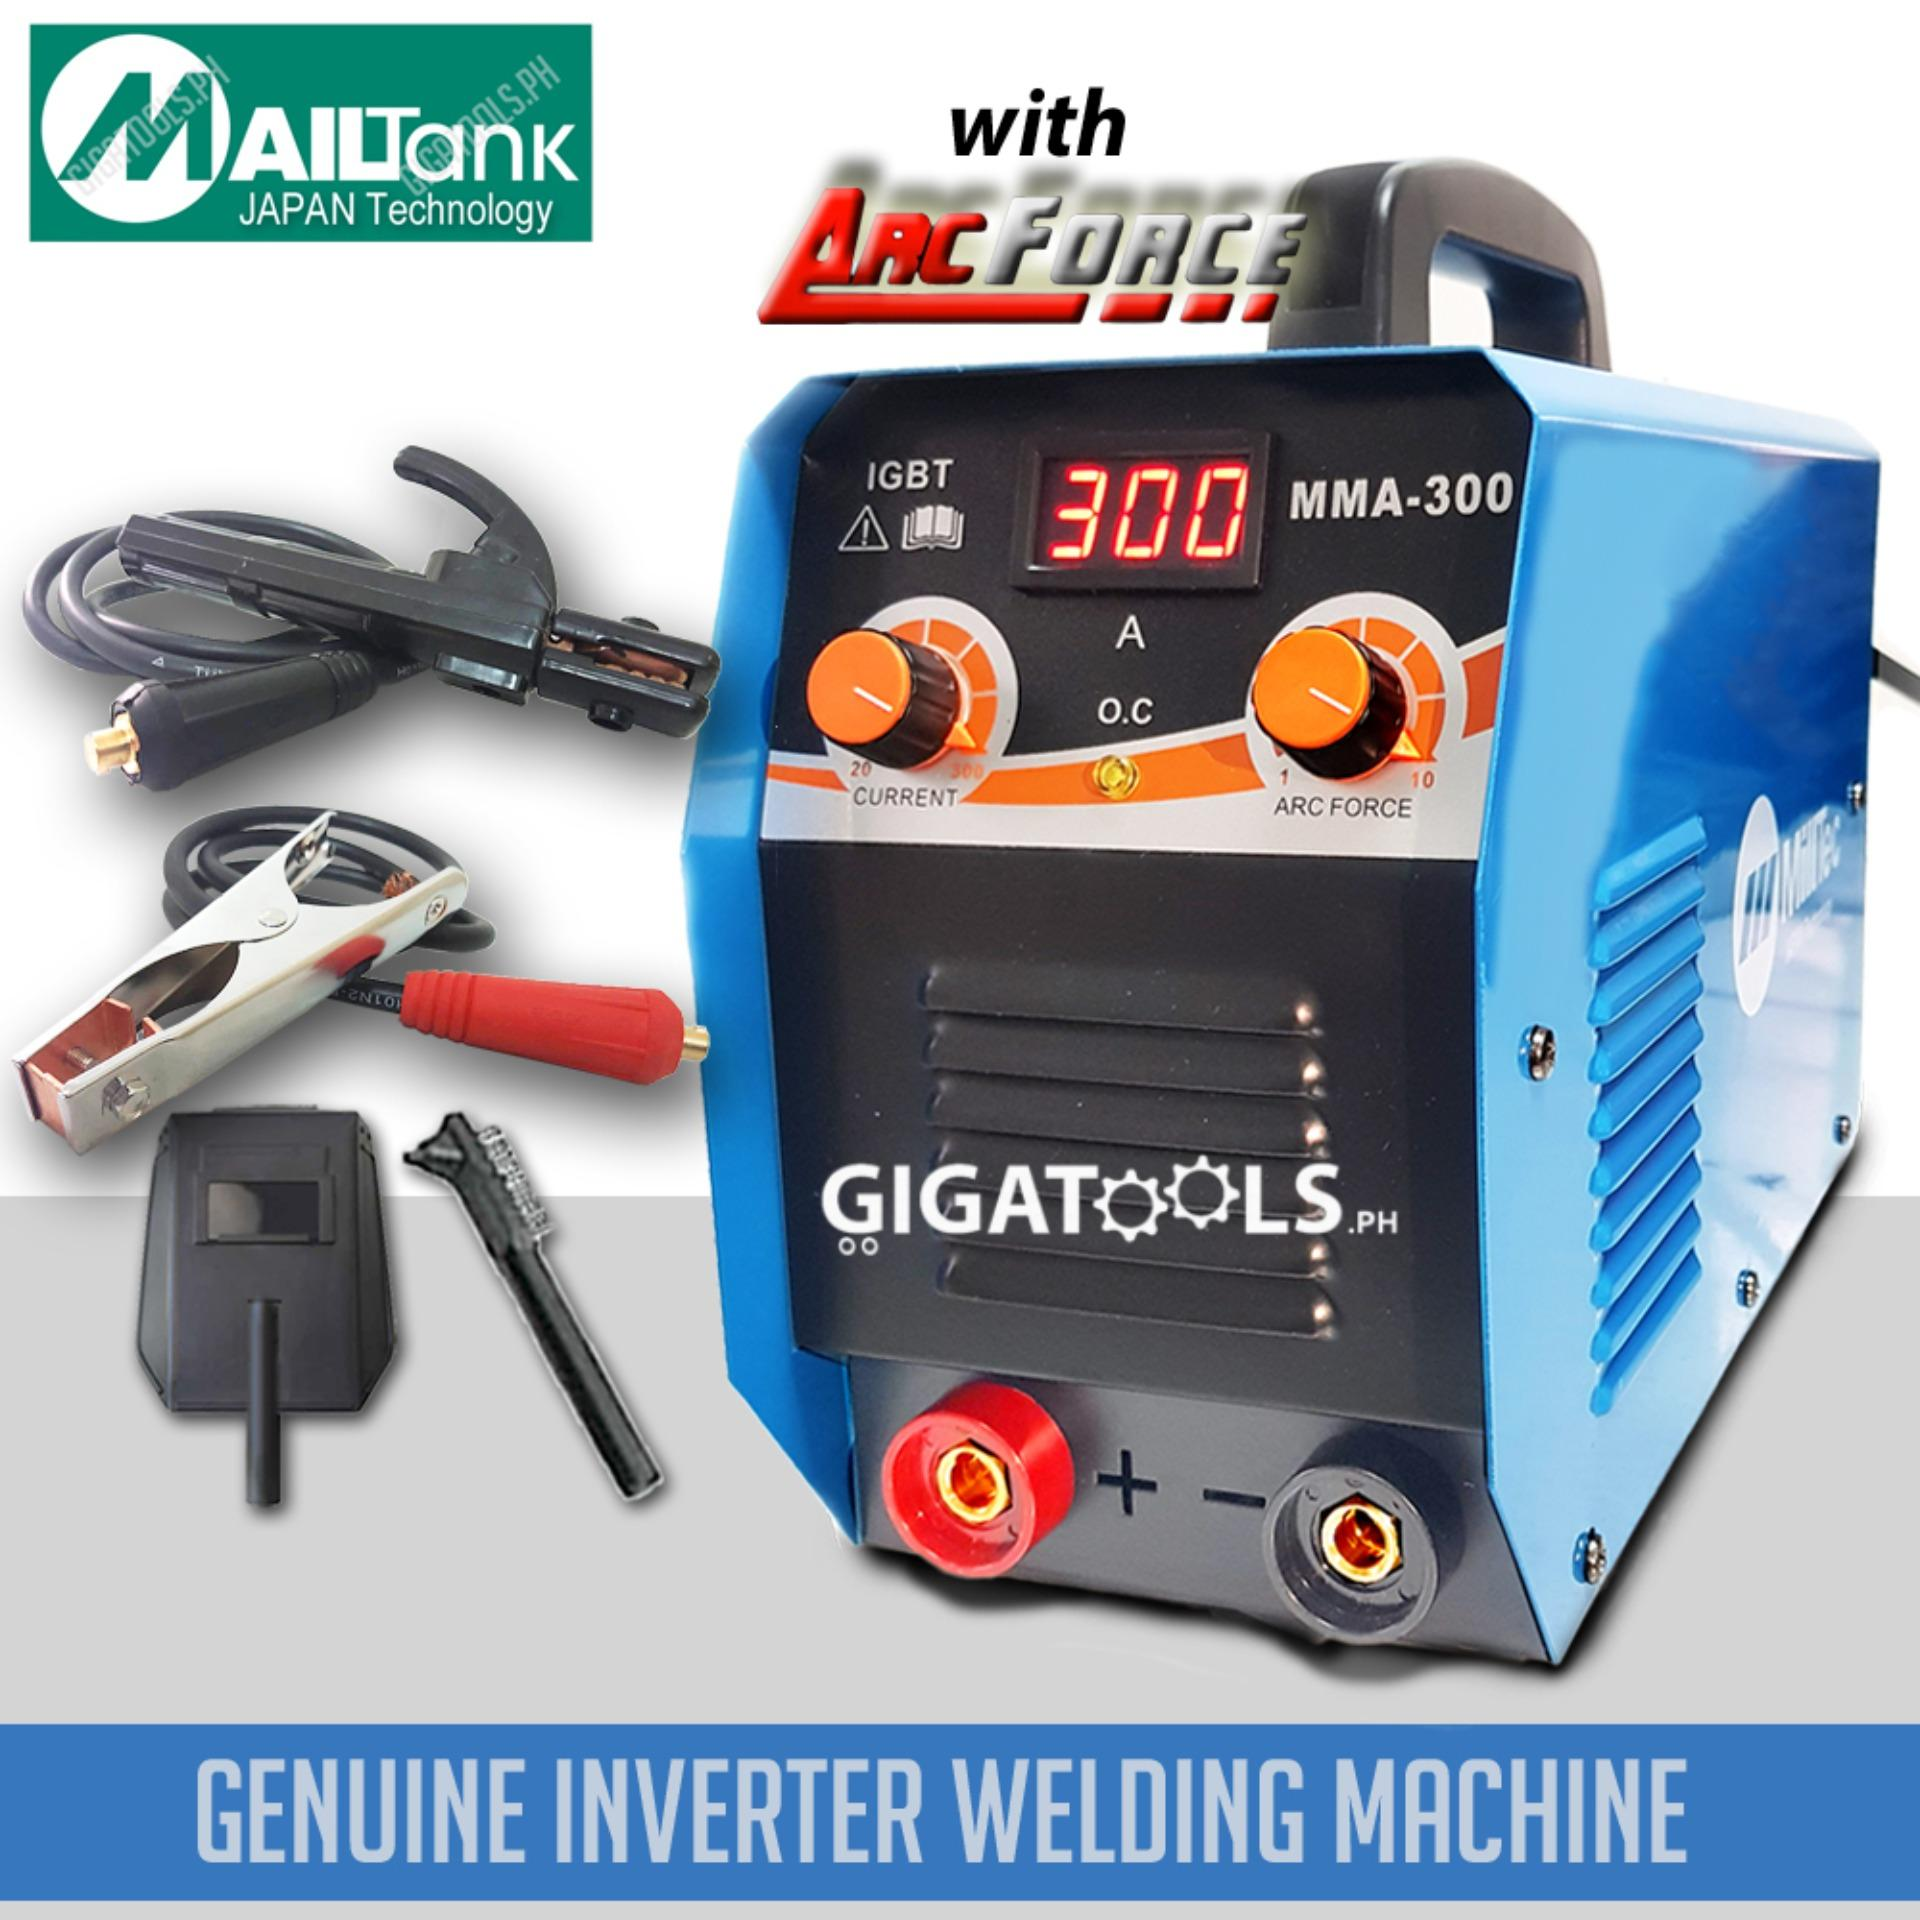 Welding For Sale Equipment Prices Brands Review In Old Lincoln Welder Parts New Mailtank Mma 300g With Arc Force Inverter Igbt Machine